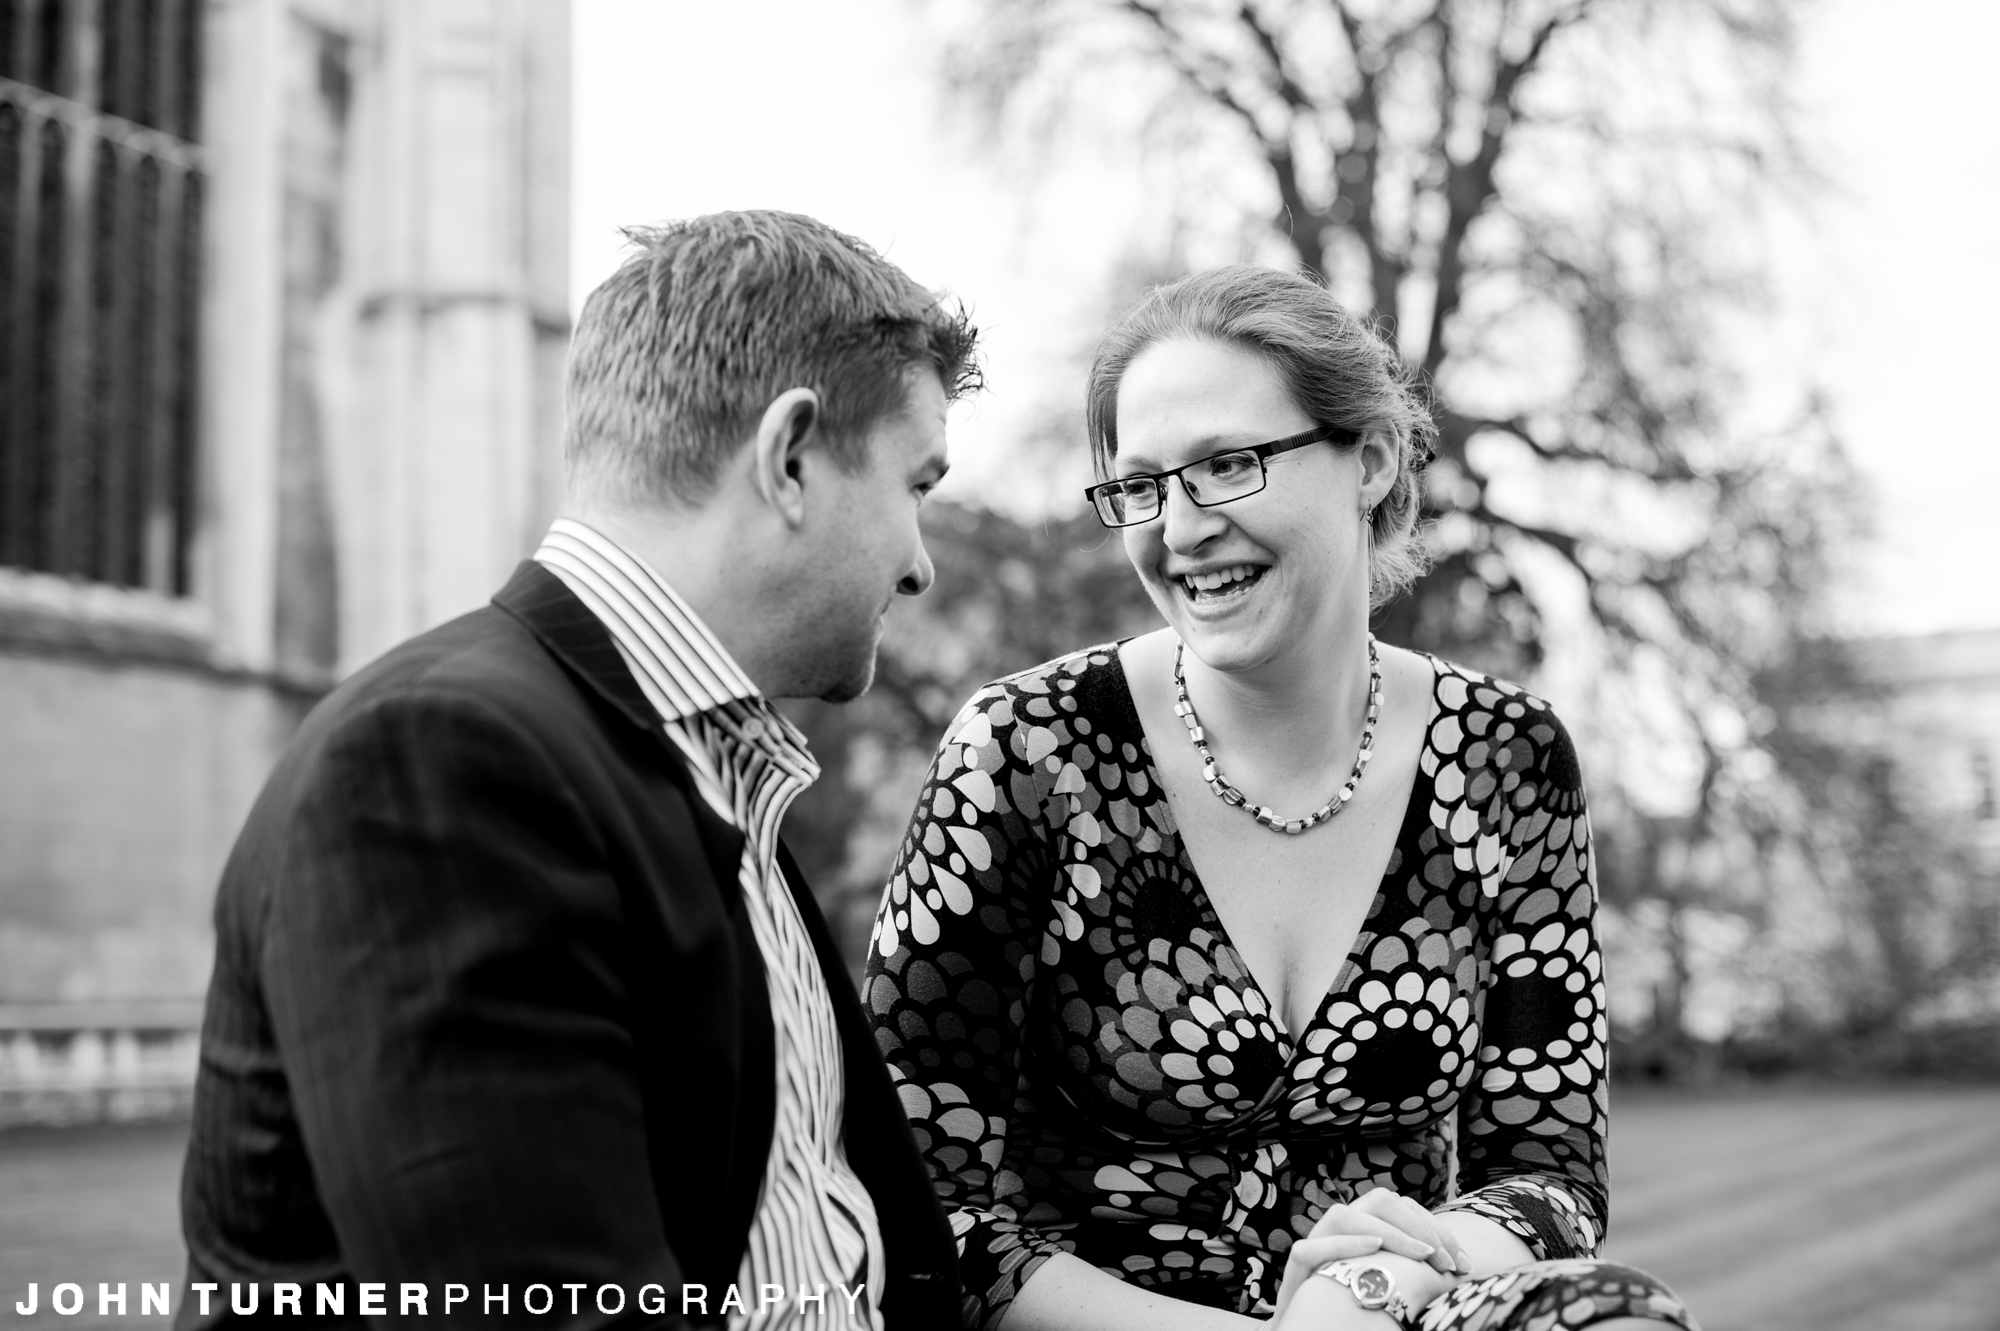 Monochrome Photography on a Cambridge Couple shoot